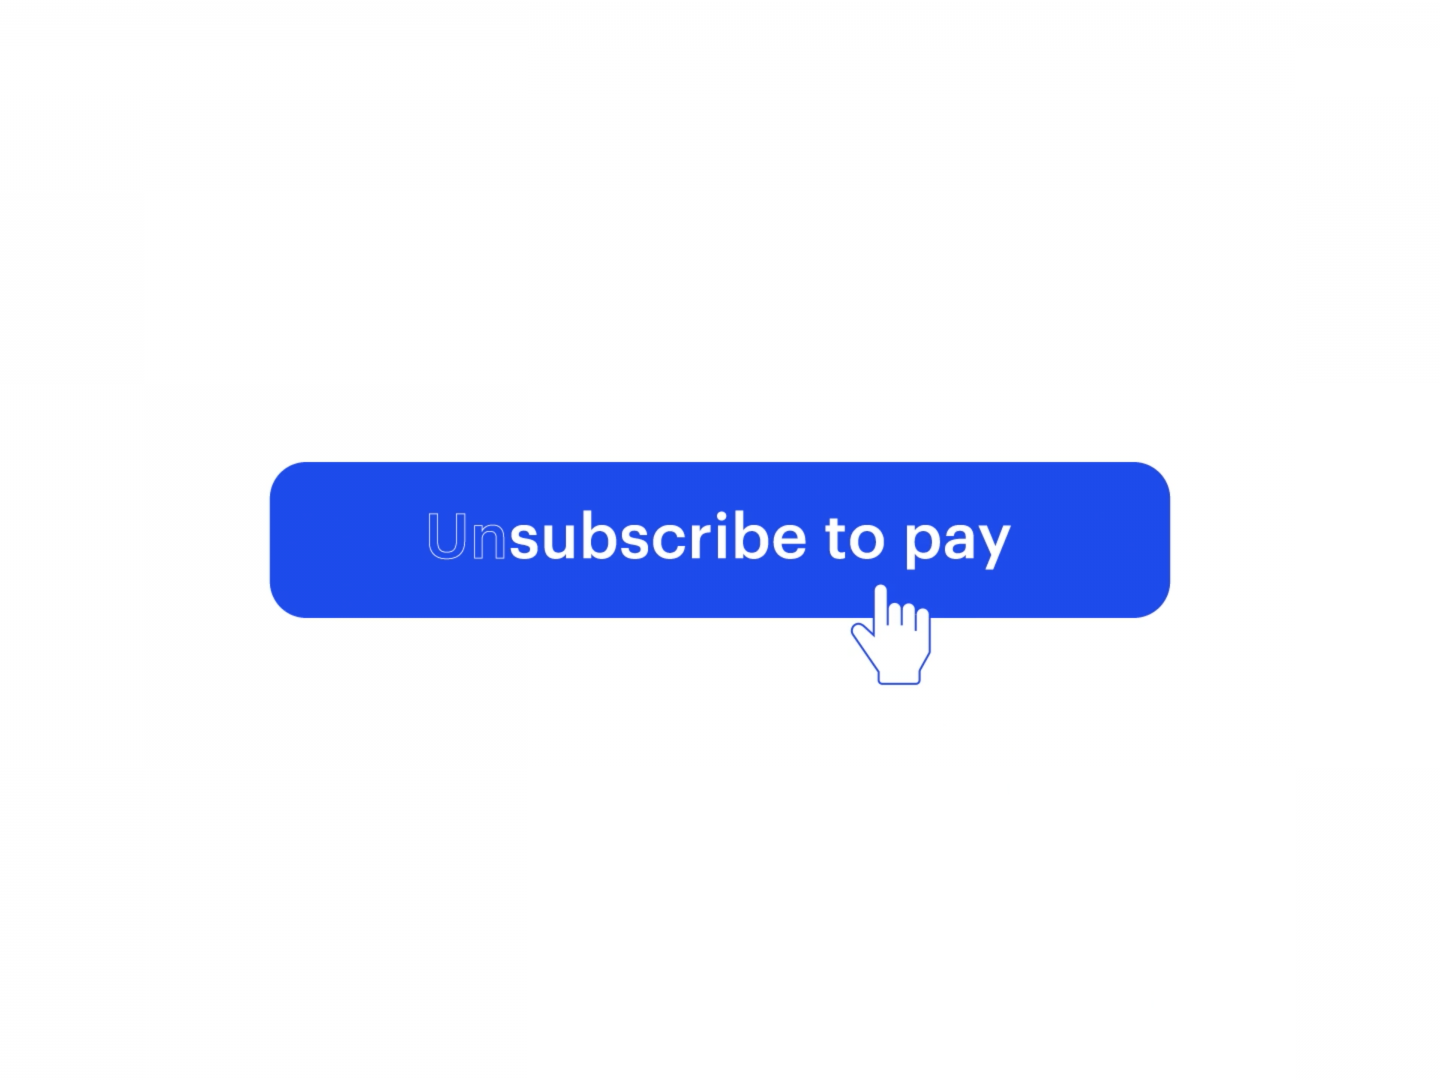 Unsubscribe To Pay Thumbnail